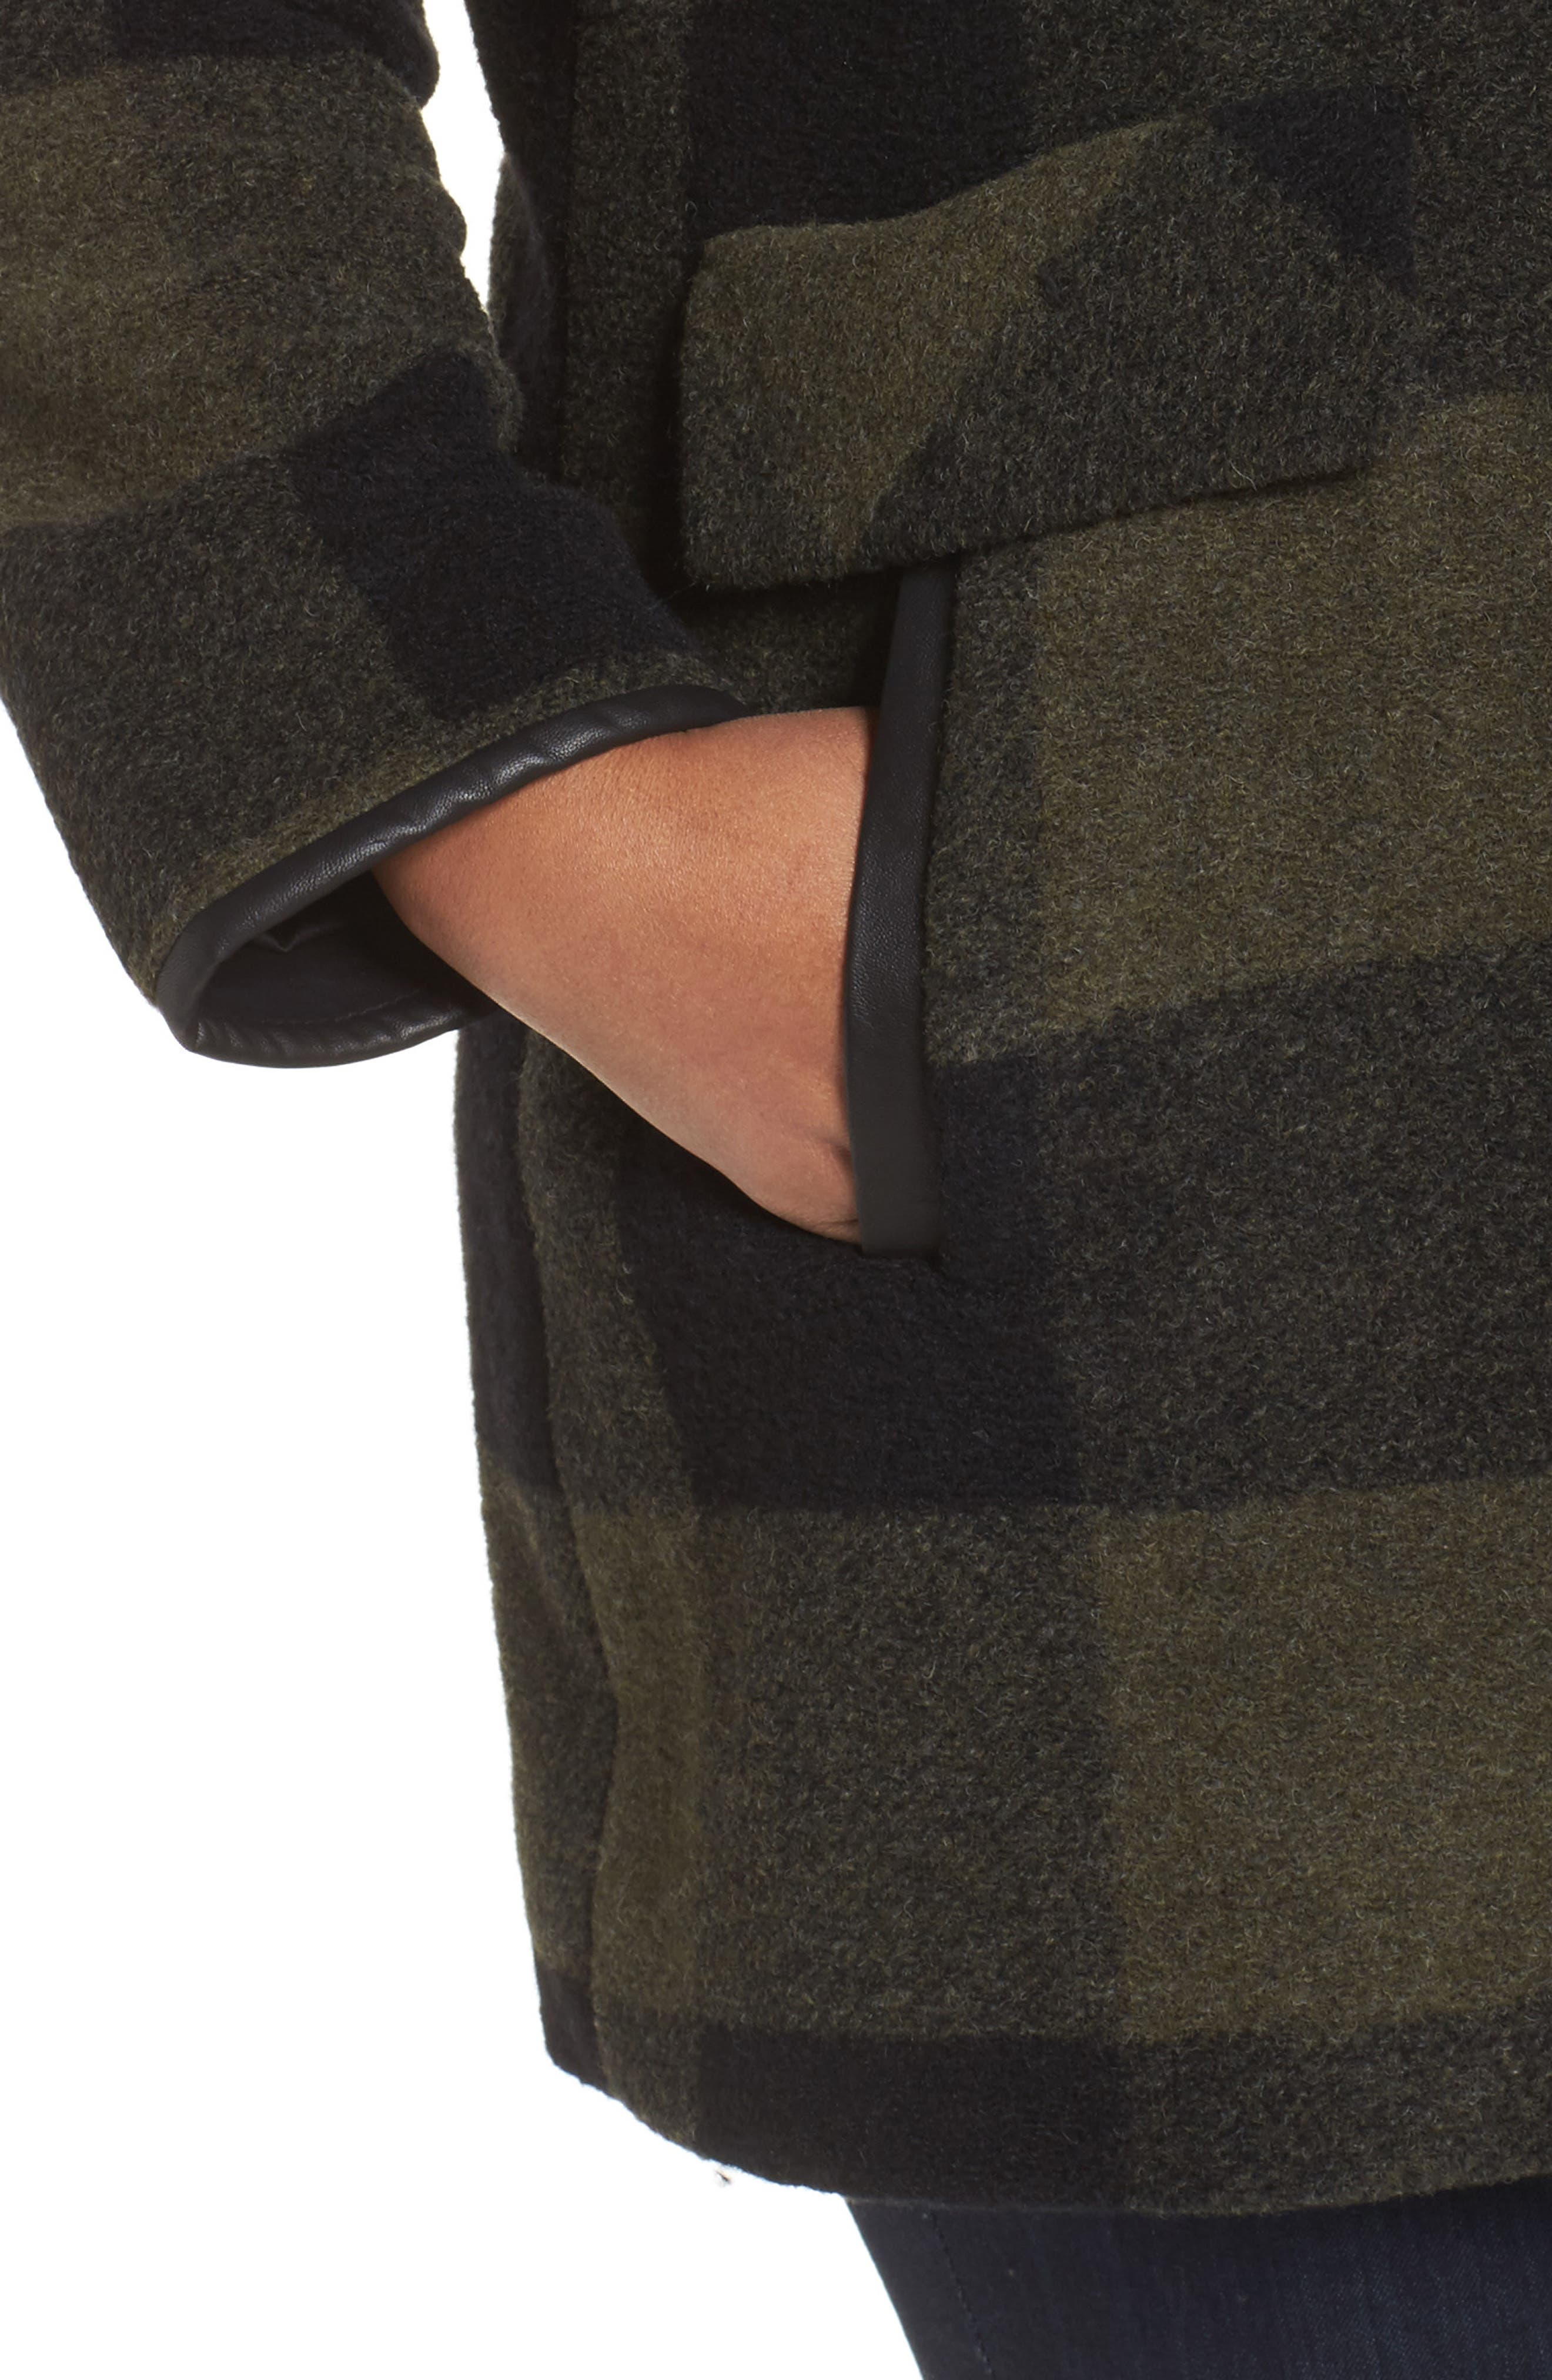 Paul Bunyan Plaid Wool Blend Barn Coat,                             Alternate thumbnail 7, color,